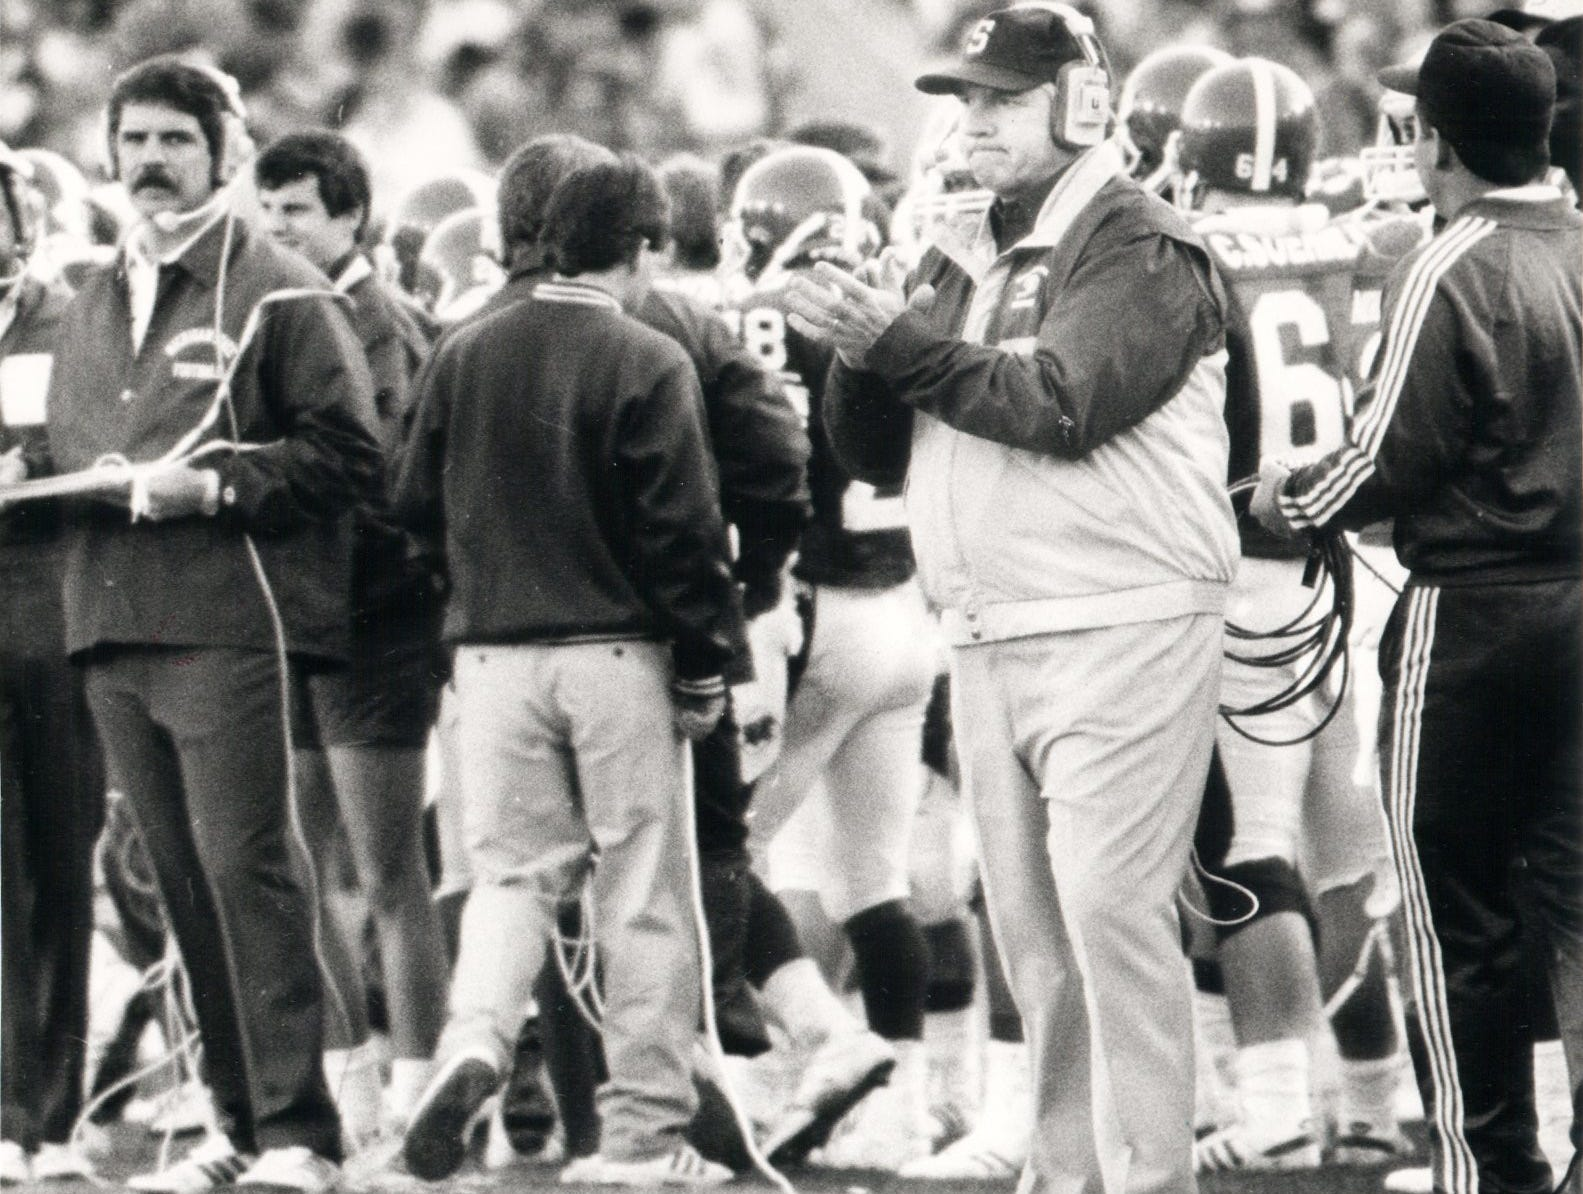 Michigan State head coach George Perles applaudes his team during the third quarter at the Rose Bowl game against USC in Pasadena. The Spartans won the 1988 Rose Bowl, Jan. 1, 1988.